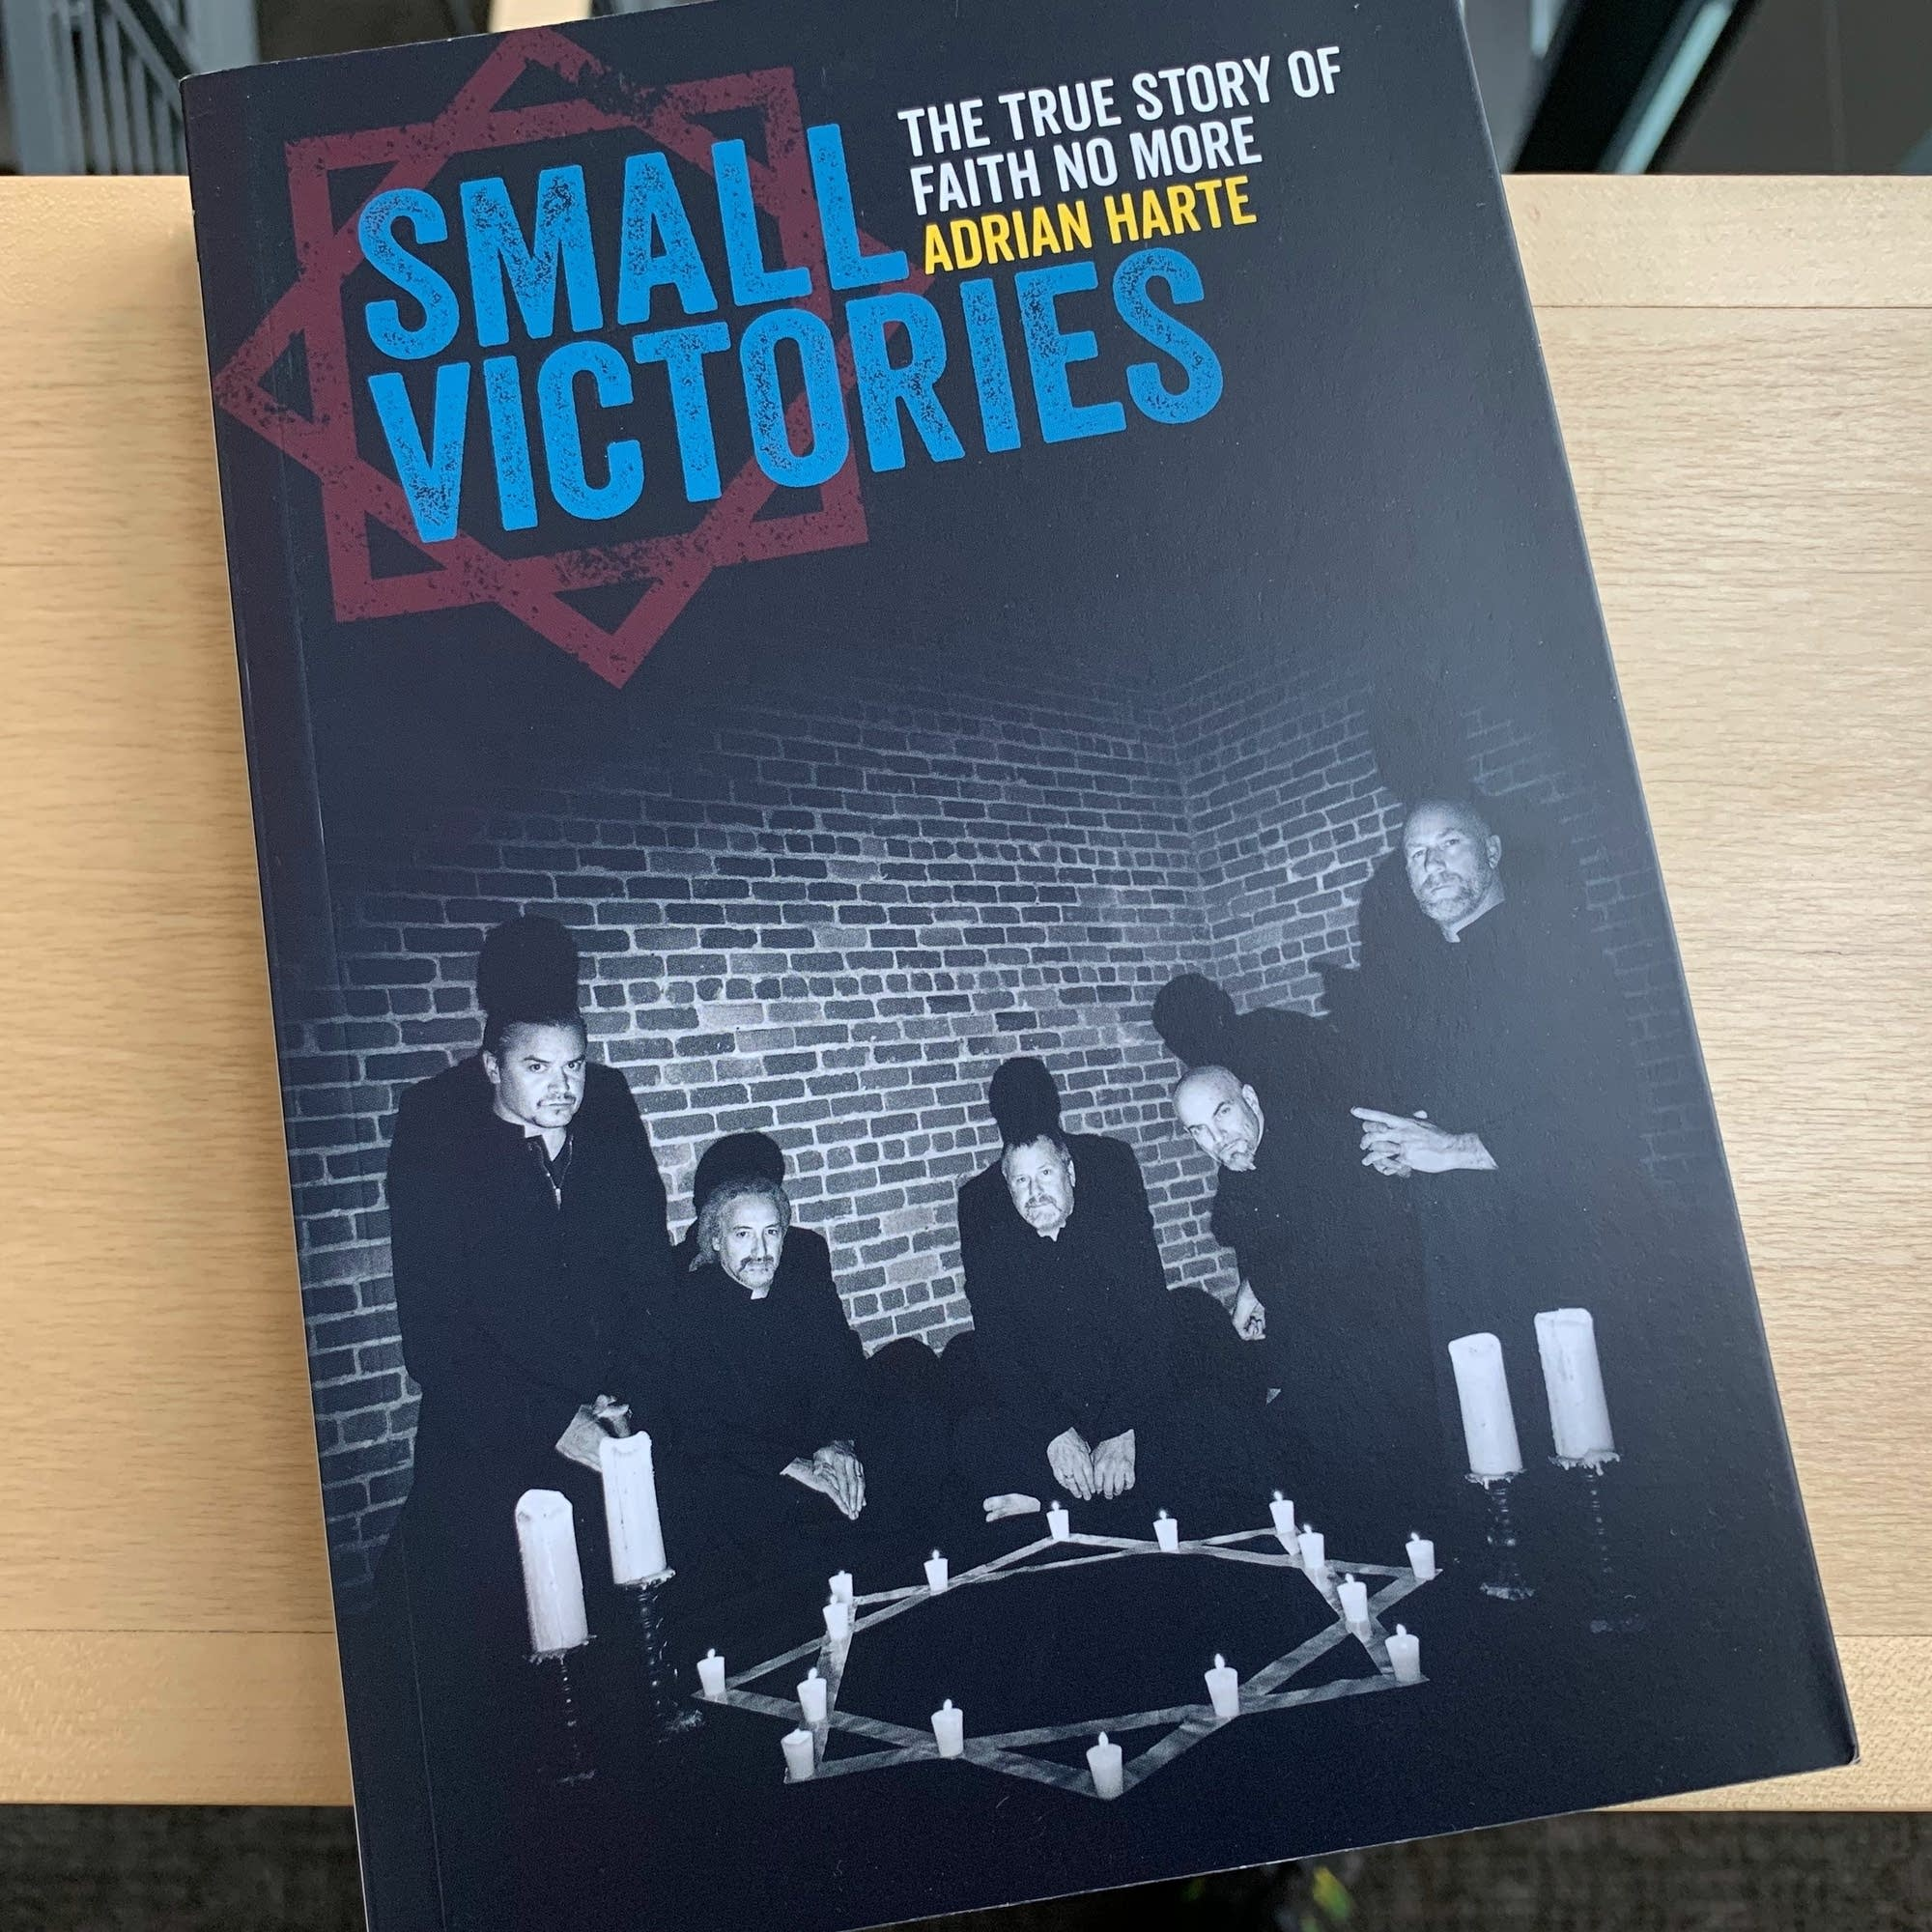 Adrian Harte's 'Small Victories.'